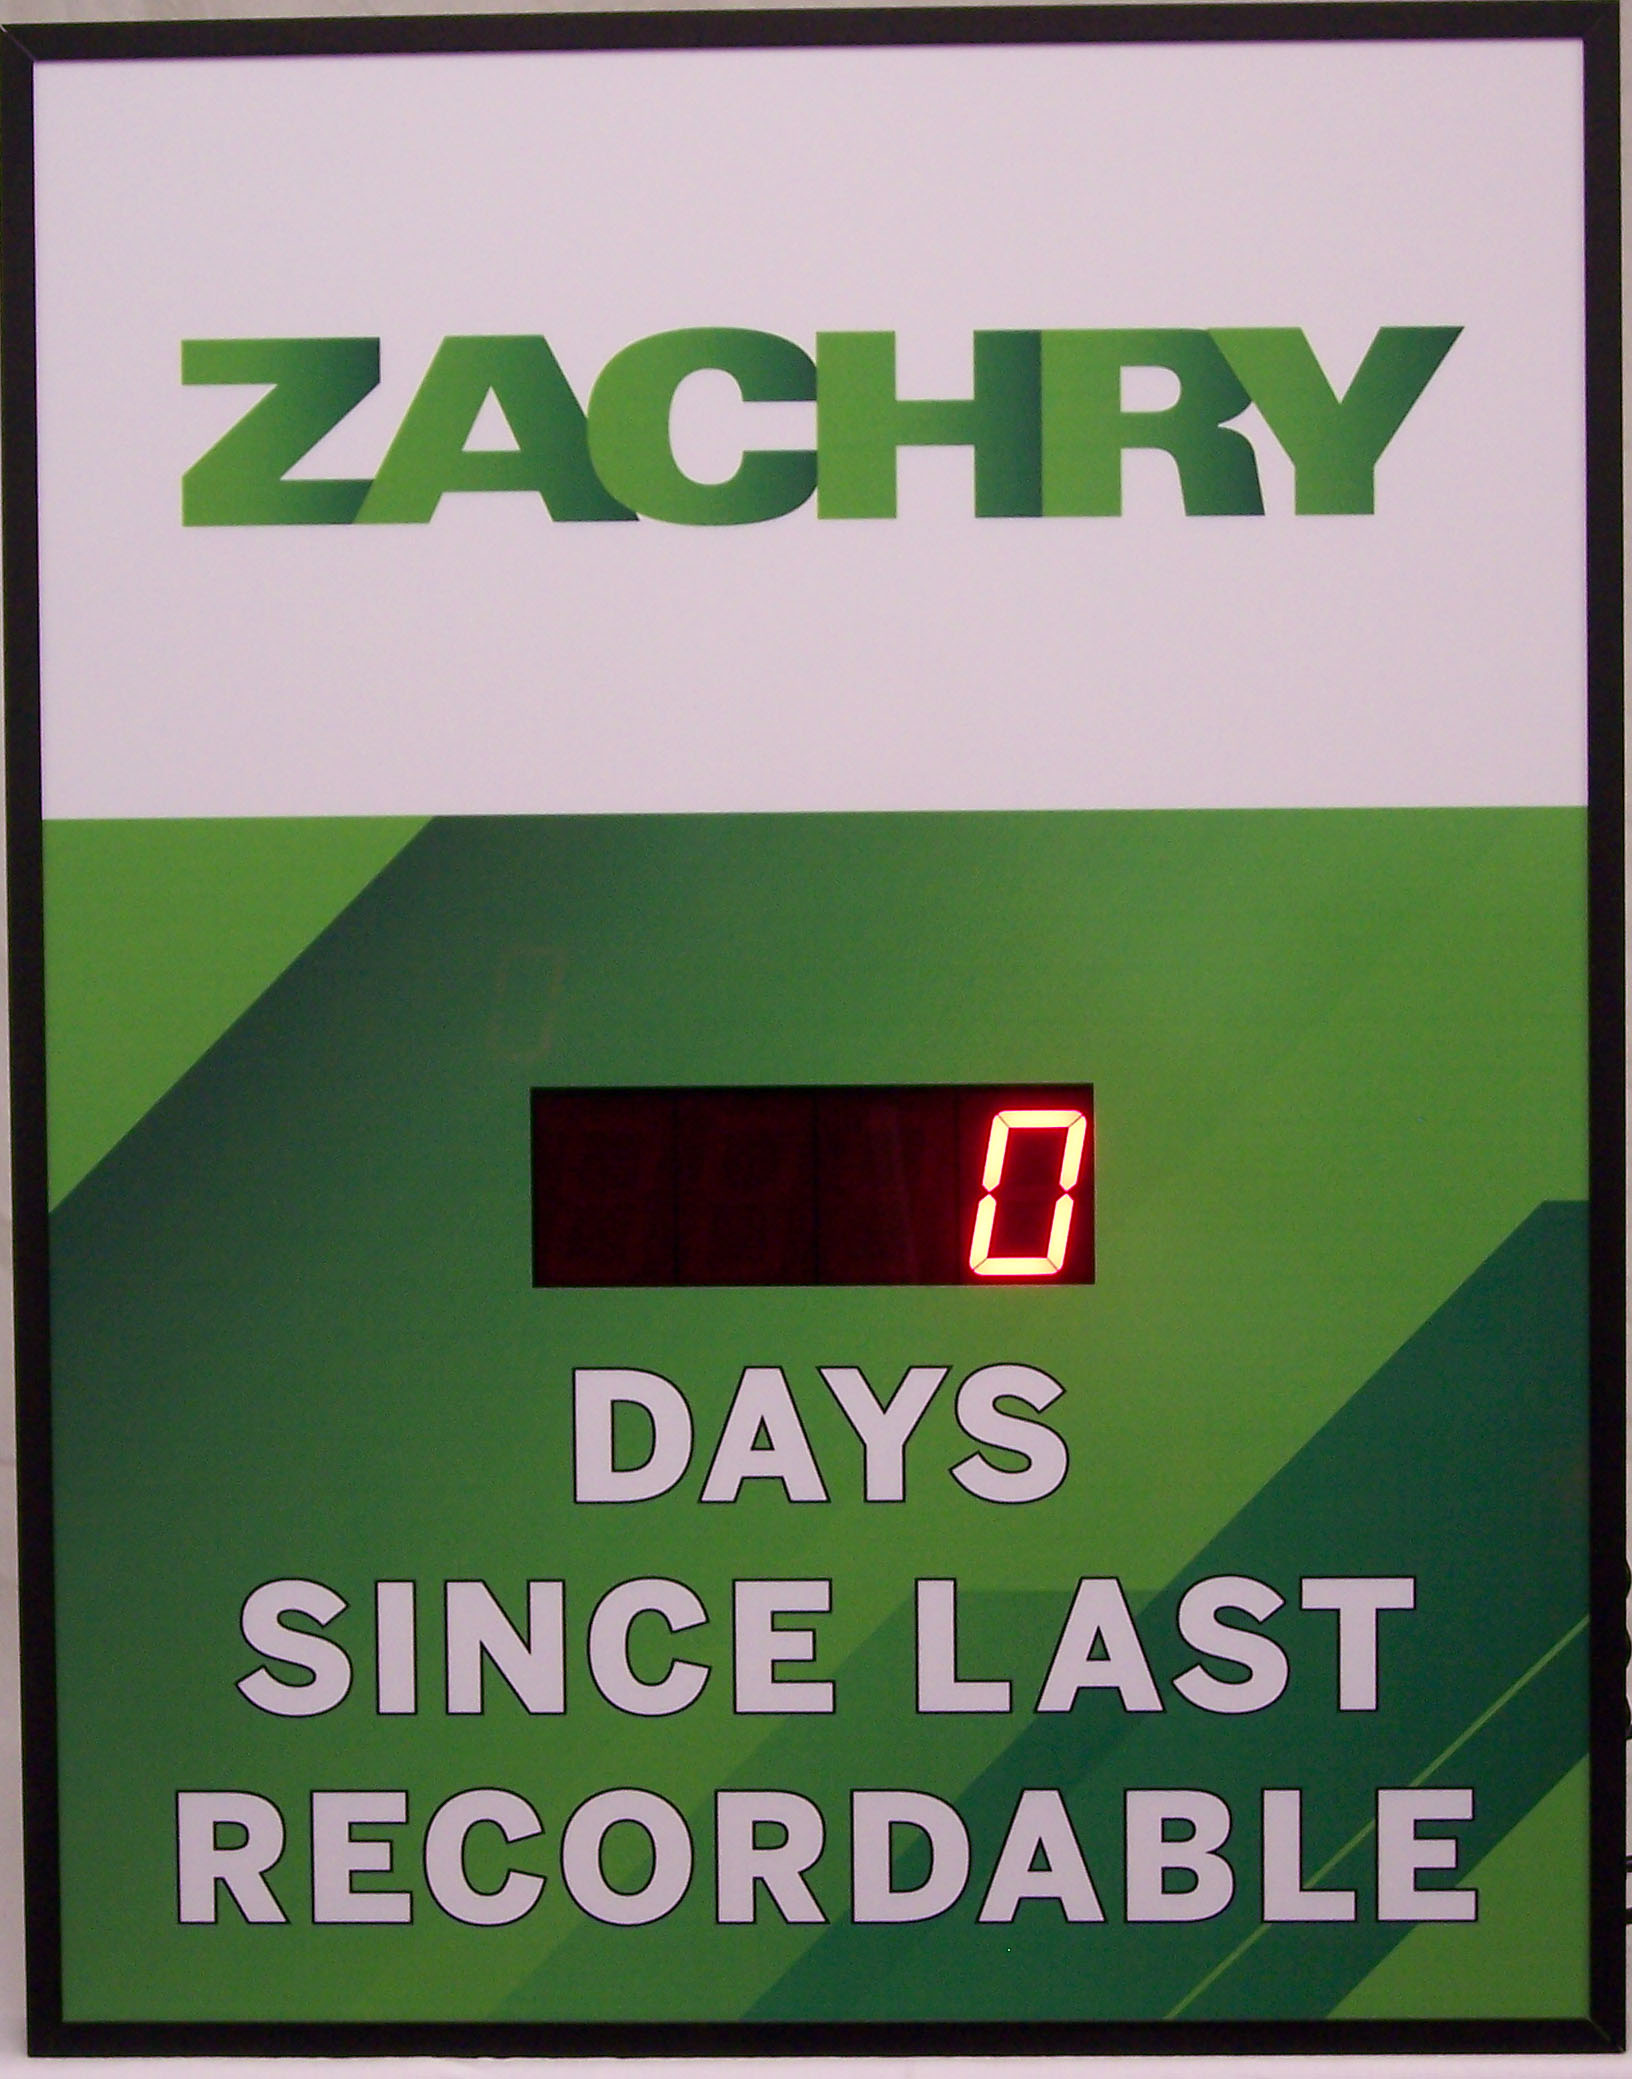 DC-25 Days Since last Recordable Safety Scoreboard